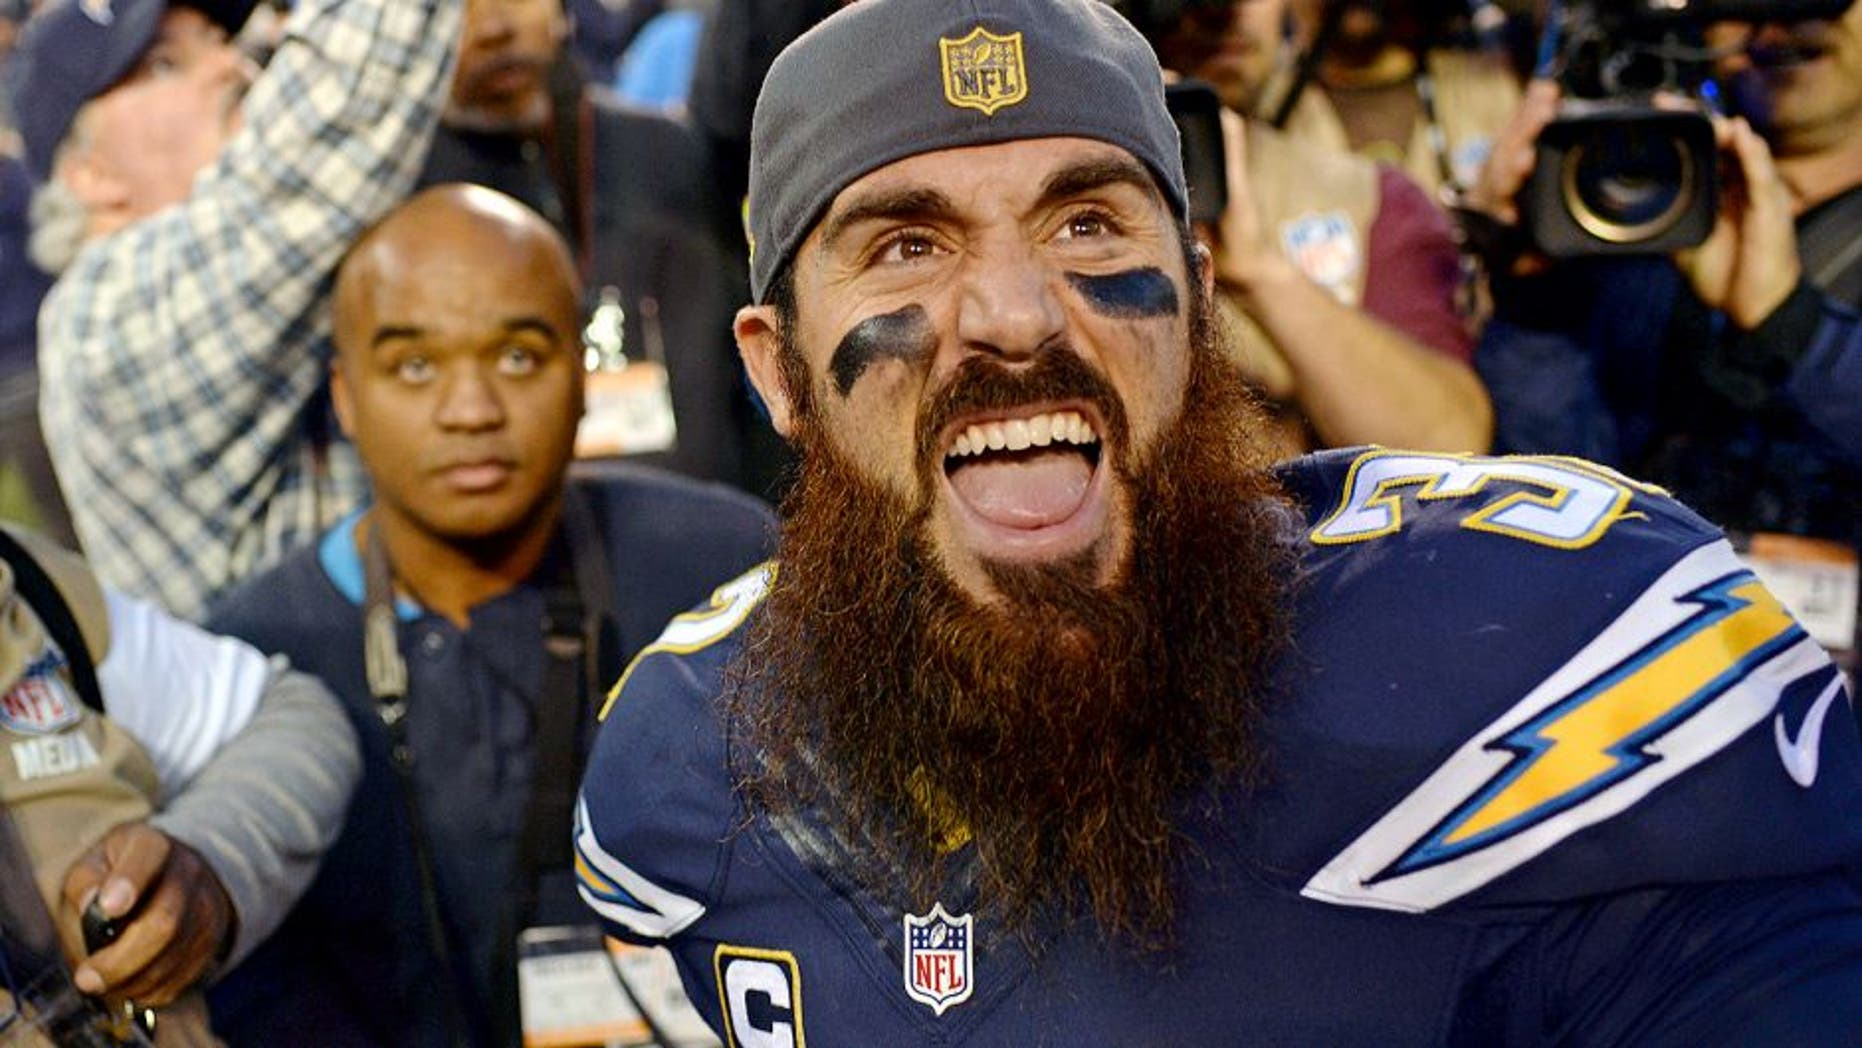 Dec 20, 2015; San Diego, CA, USA; San Diego Chargers free safety Eric Weddle (32) reacts to fans after the Chargers beat the Miami Dolphins 30-14 at Qualcomm Stadium. Mandatory Credit: Jake Roth-USA TODAY Sports